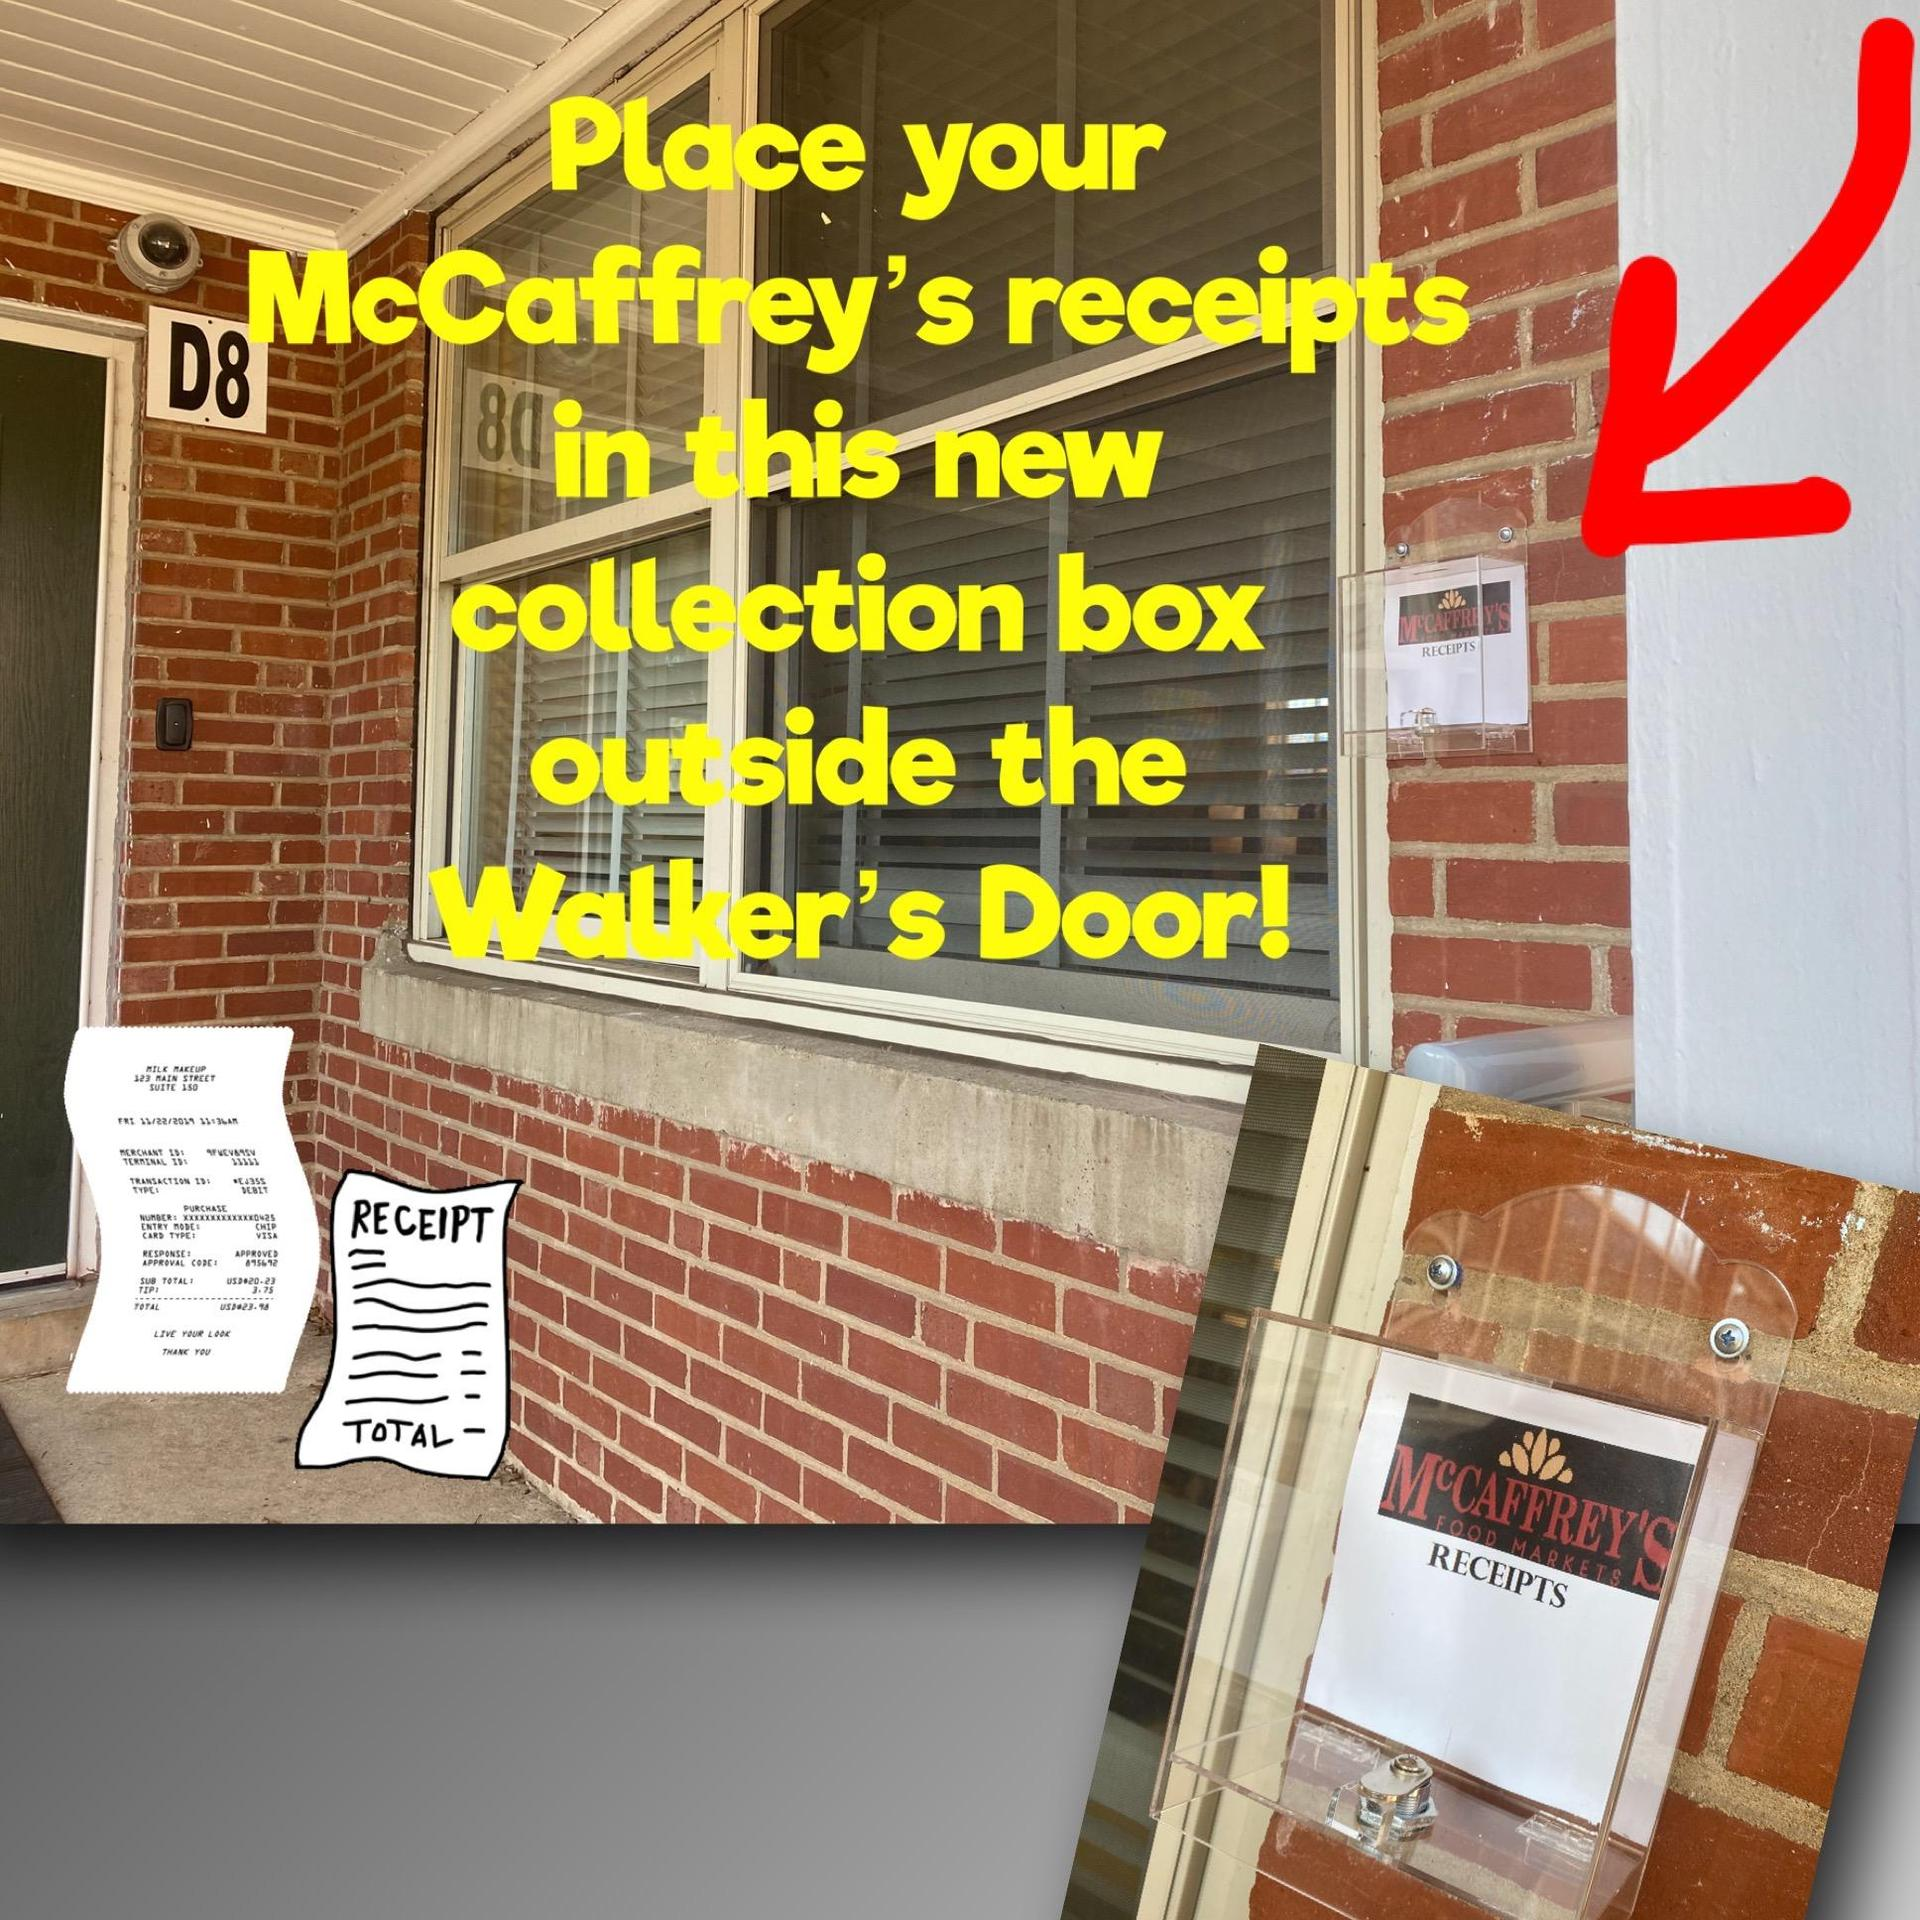 image of plastic receipt collection box attached to brick wall